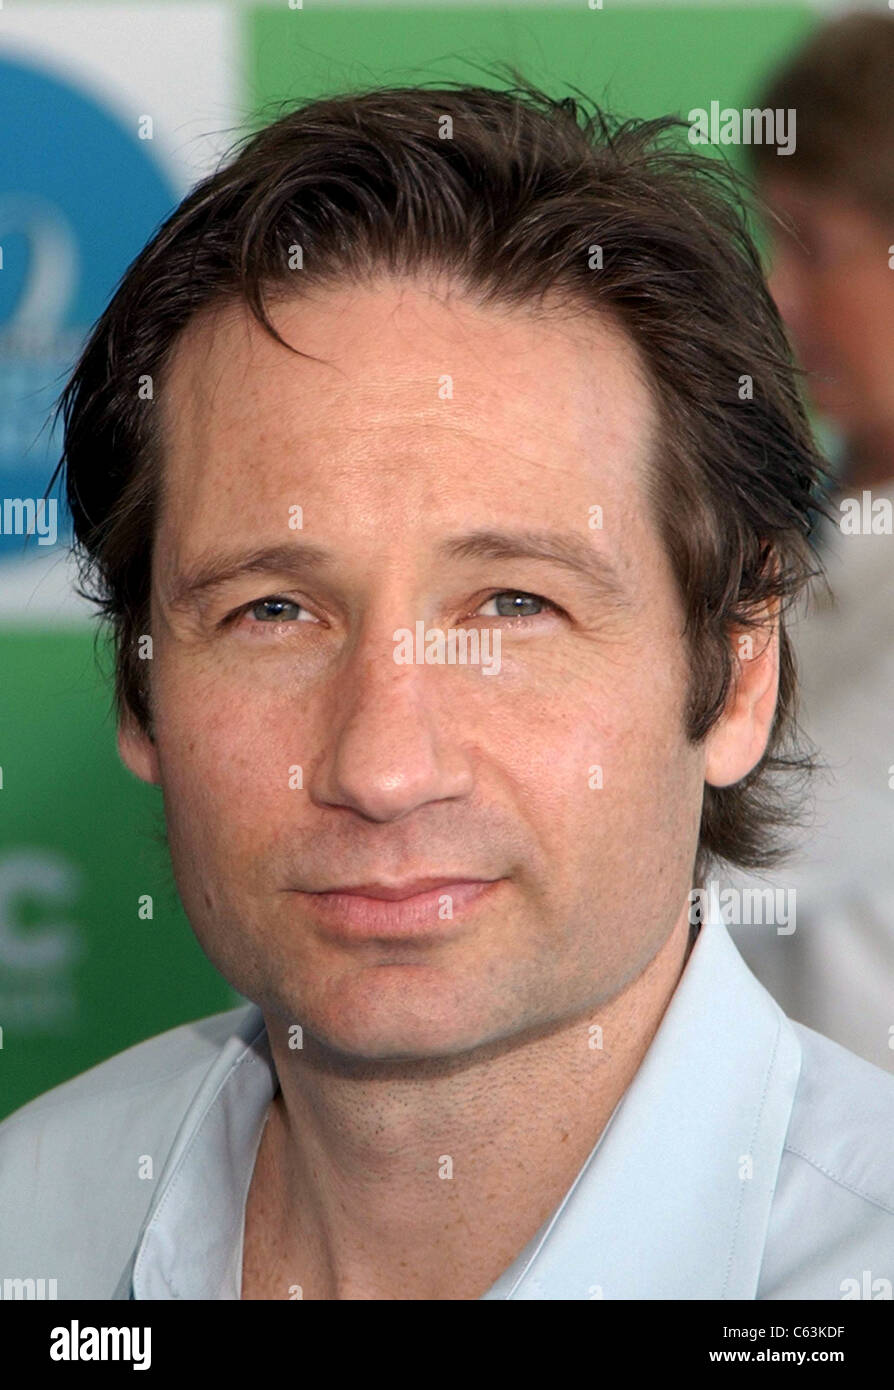 David Duchovny at arrivals for 20th IFP Independent Spirit Awards, Los Angeles, CA, Saturday, February 26, 2005. - Stock Image